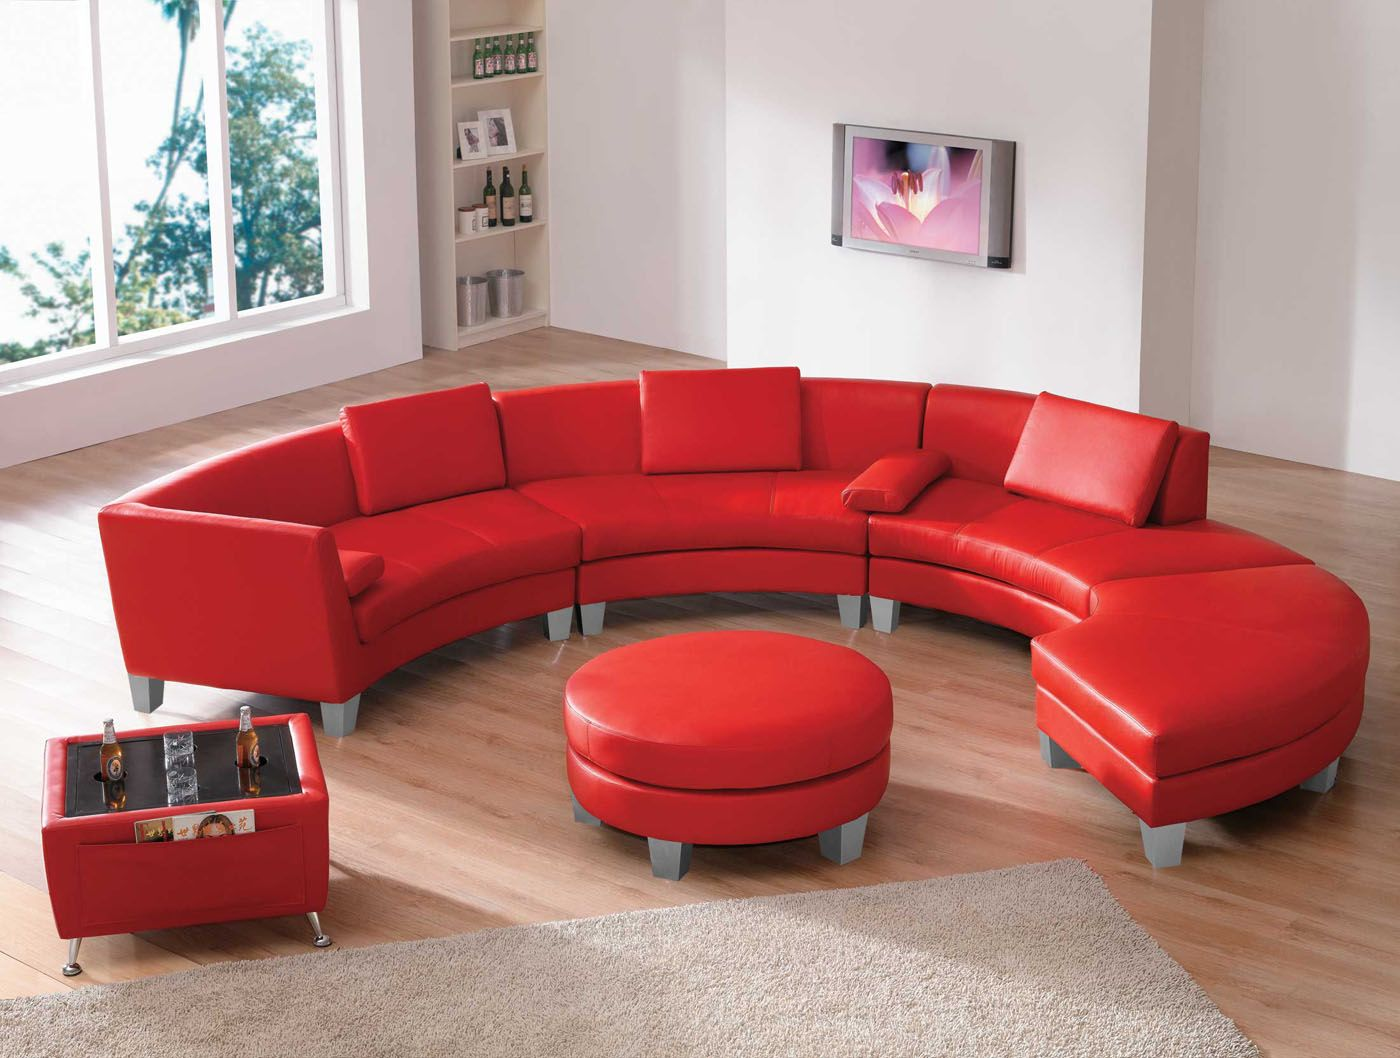 Living Room Interior Designs Furniture Completely Change For Your With Red Sectional Sofas